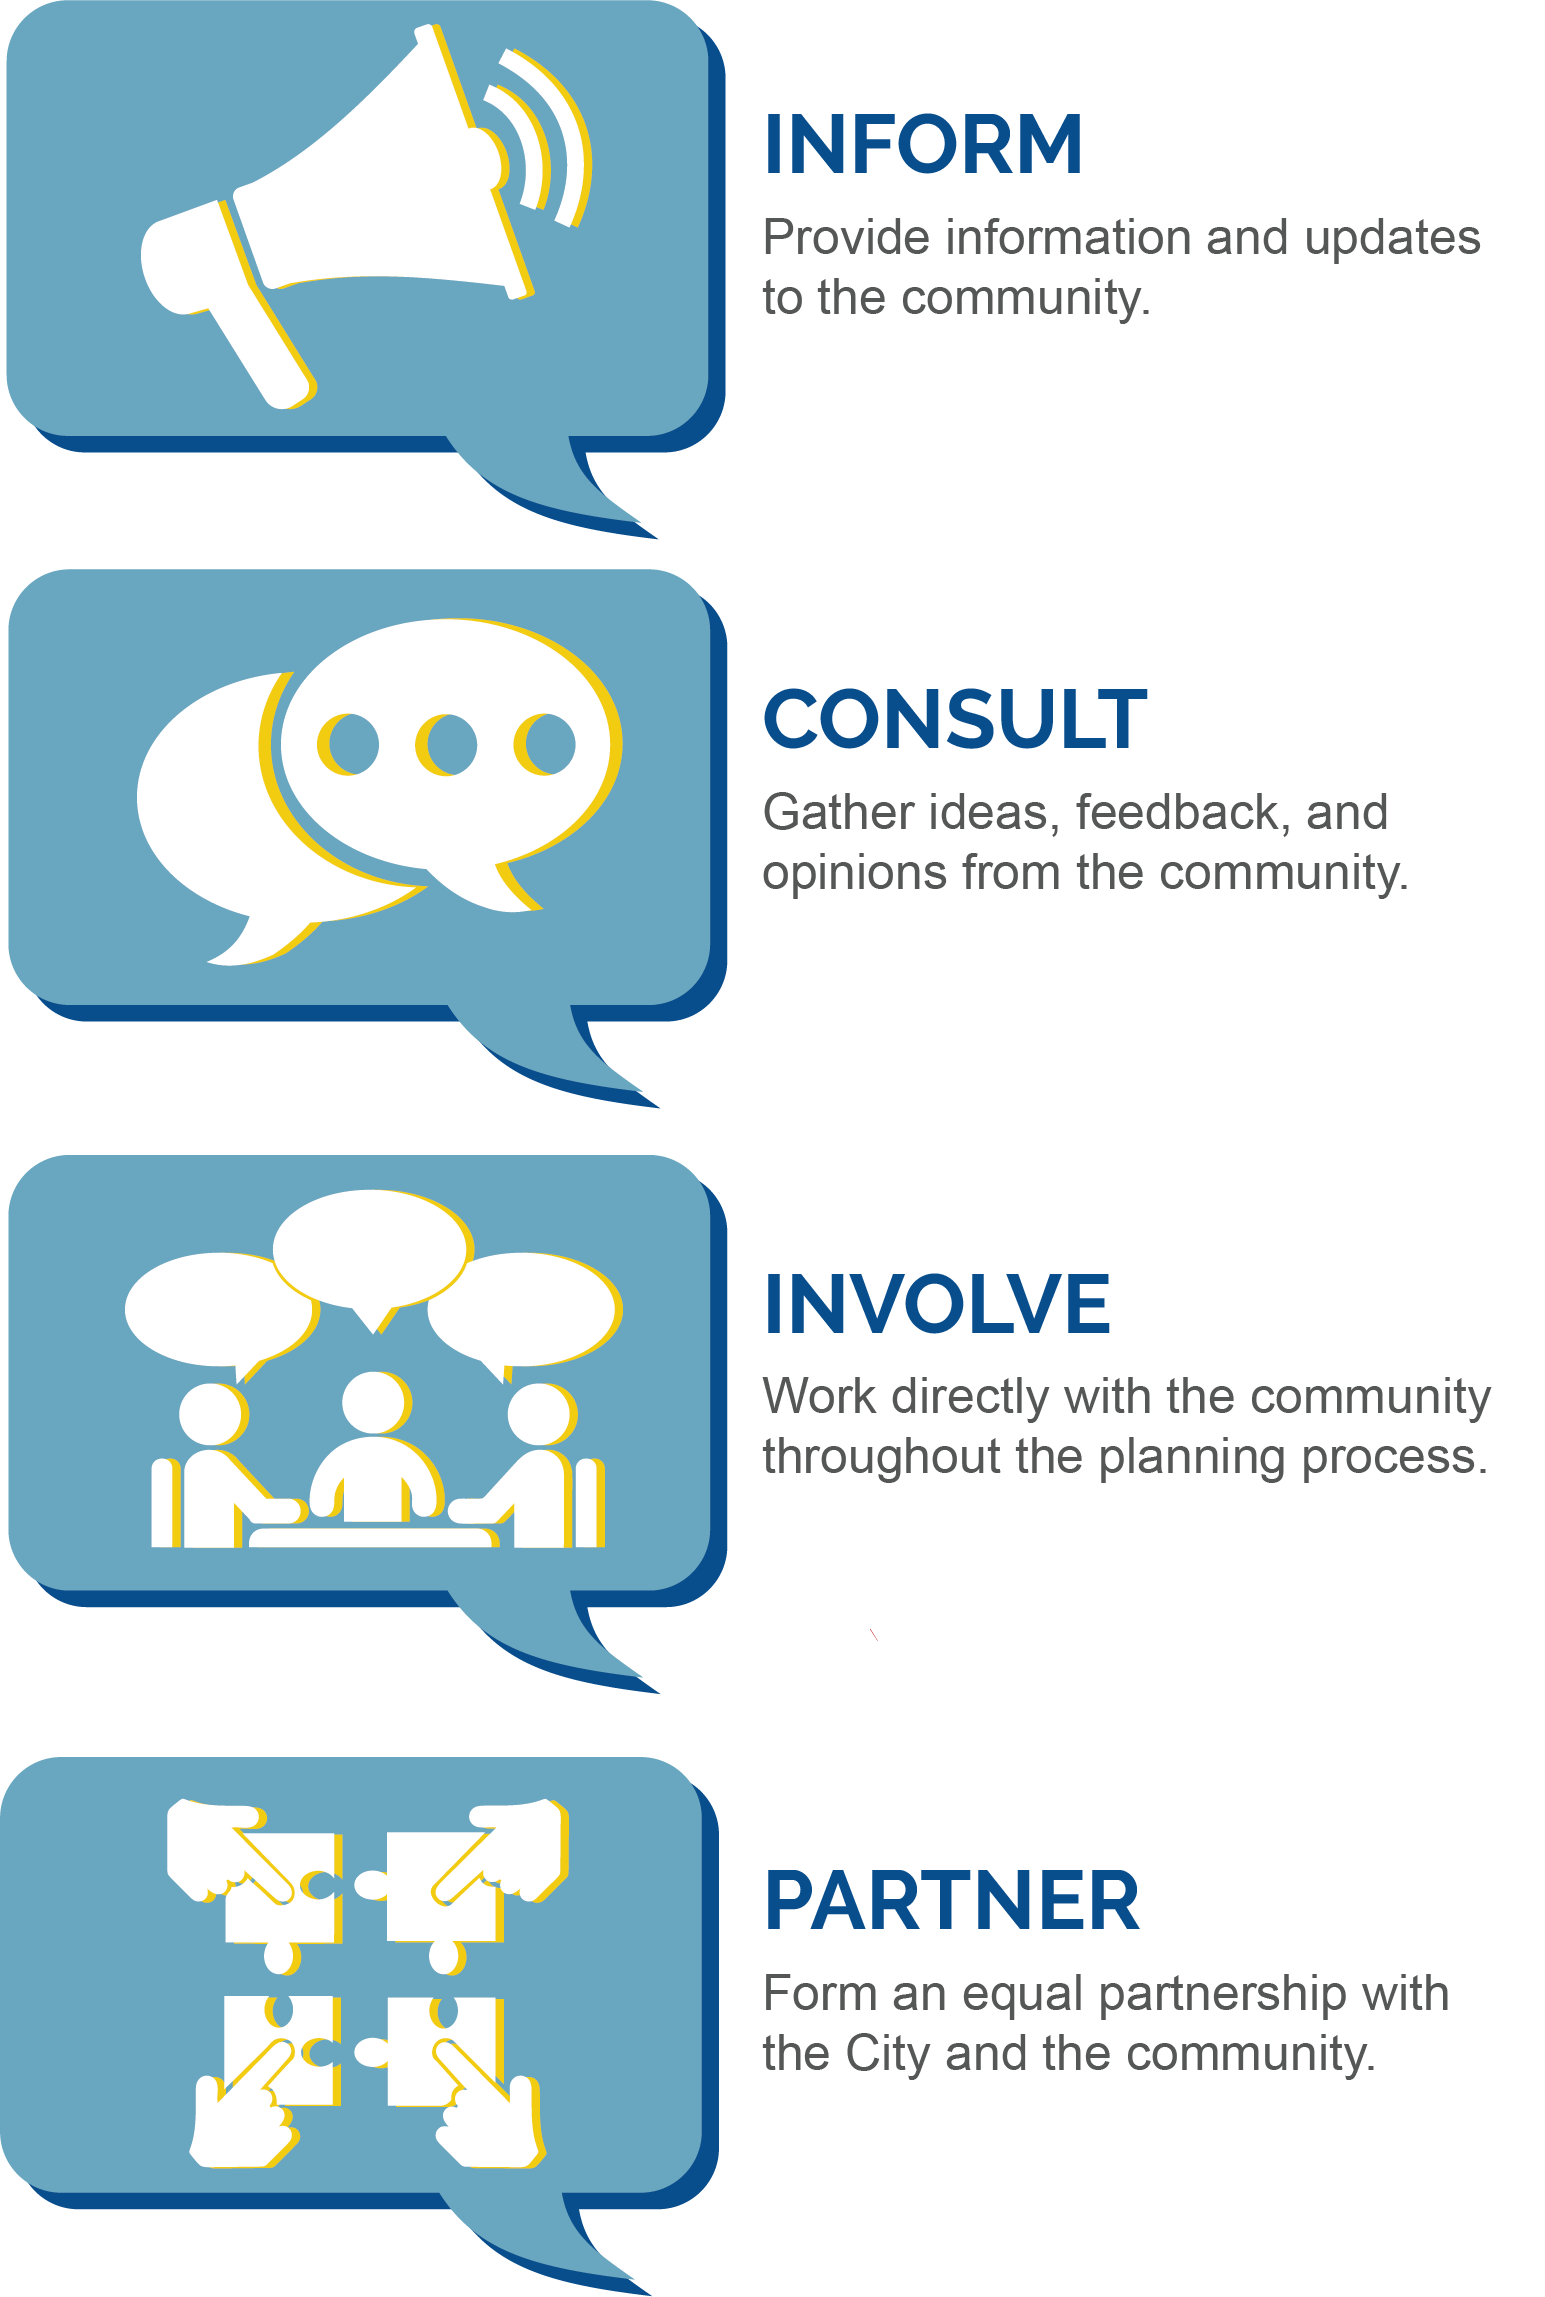 Infographic showing each of the 4 levels of engagement, which are the following: 1) Inform - Provide information and updates to the community (2) Consult - Gather ideas, feedback, and opinions from the community (3) Involve - Work directly with the community throughout the planning process (4) Partner - Form an equal partnership with the City and the community.